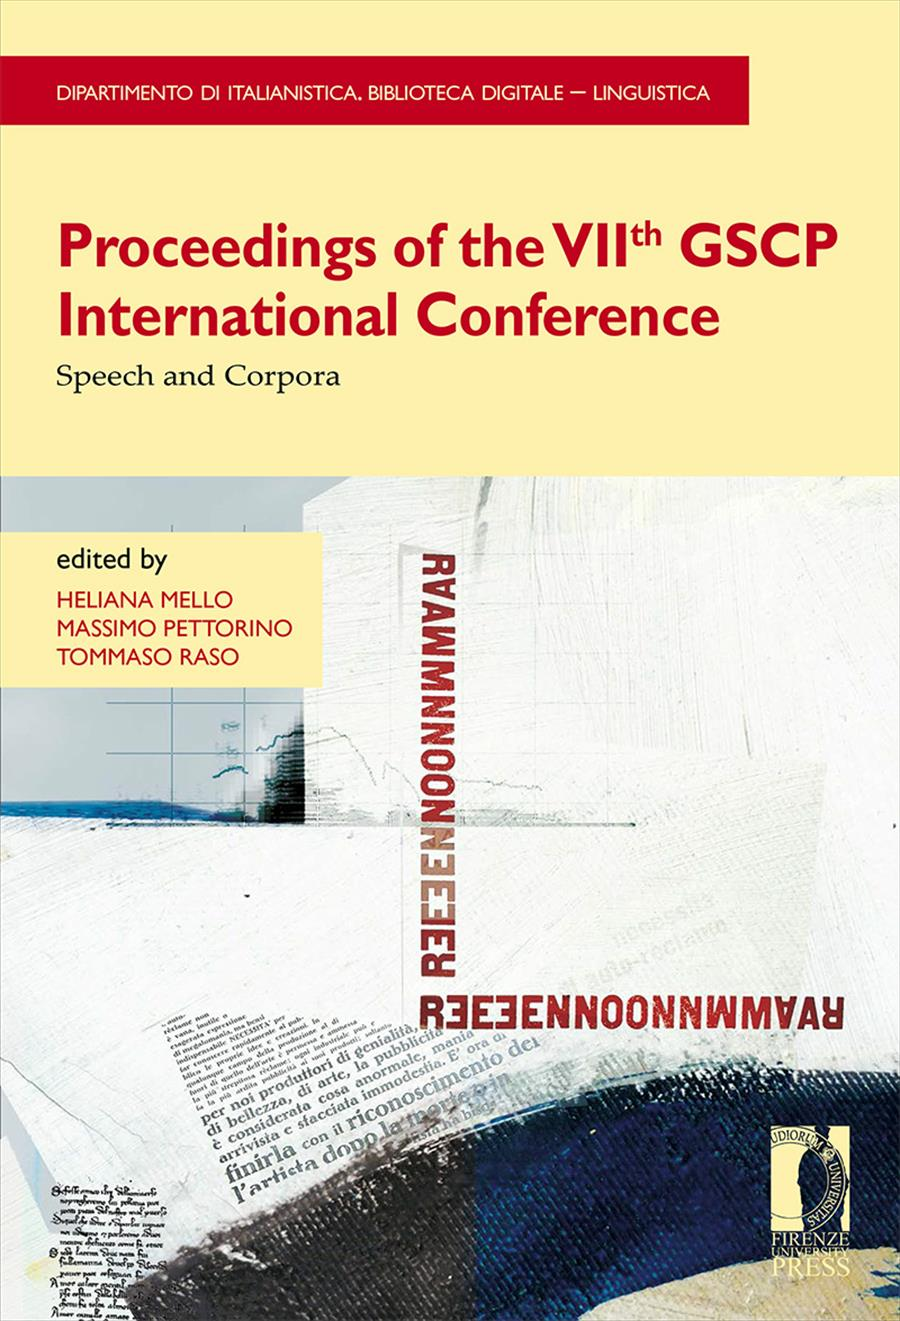 Proceedings of the VIIth GSCP International Conference